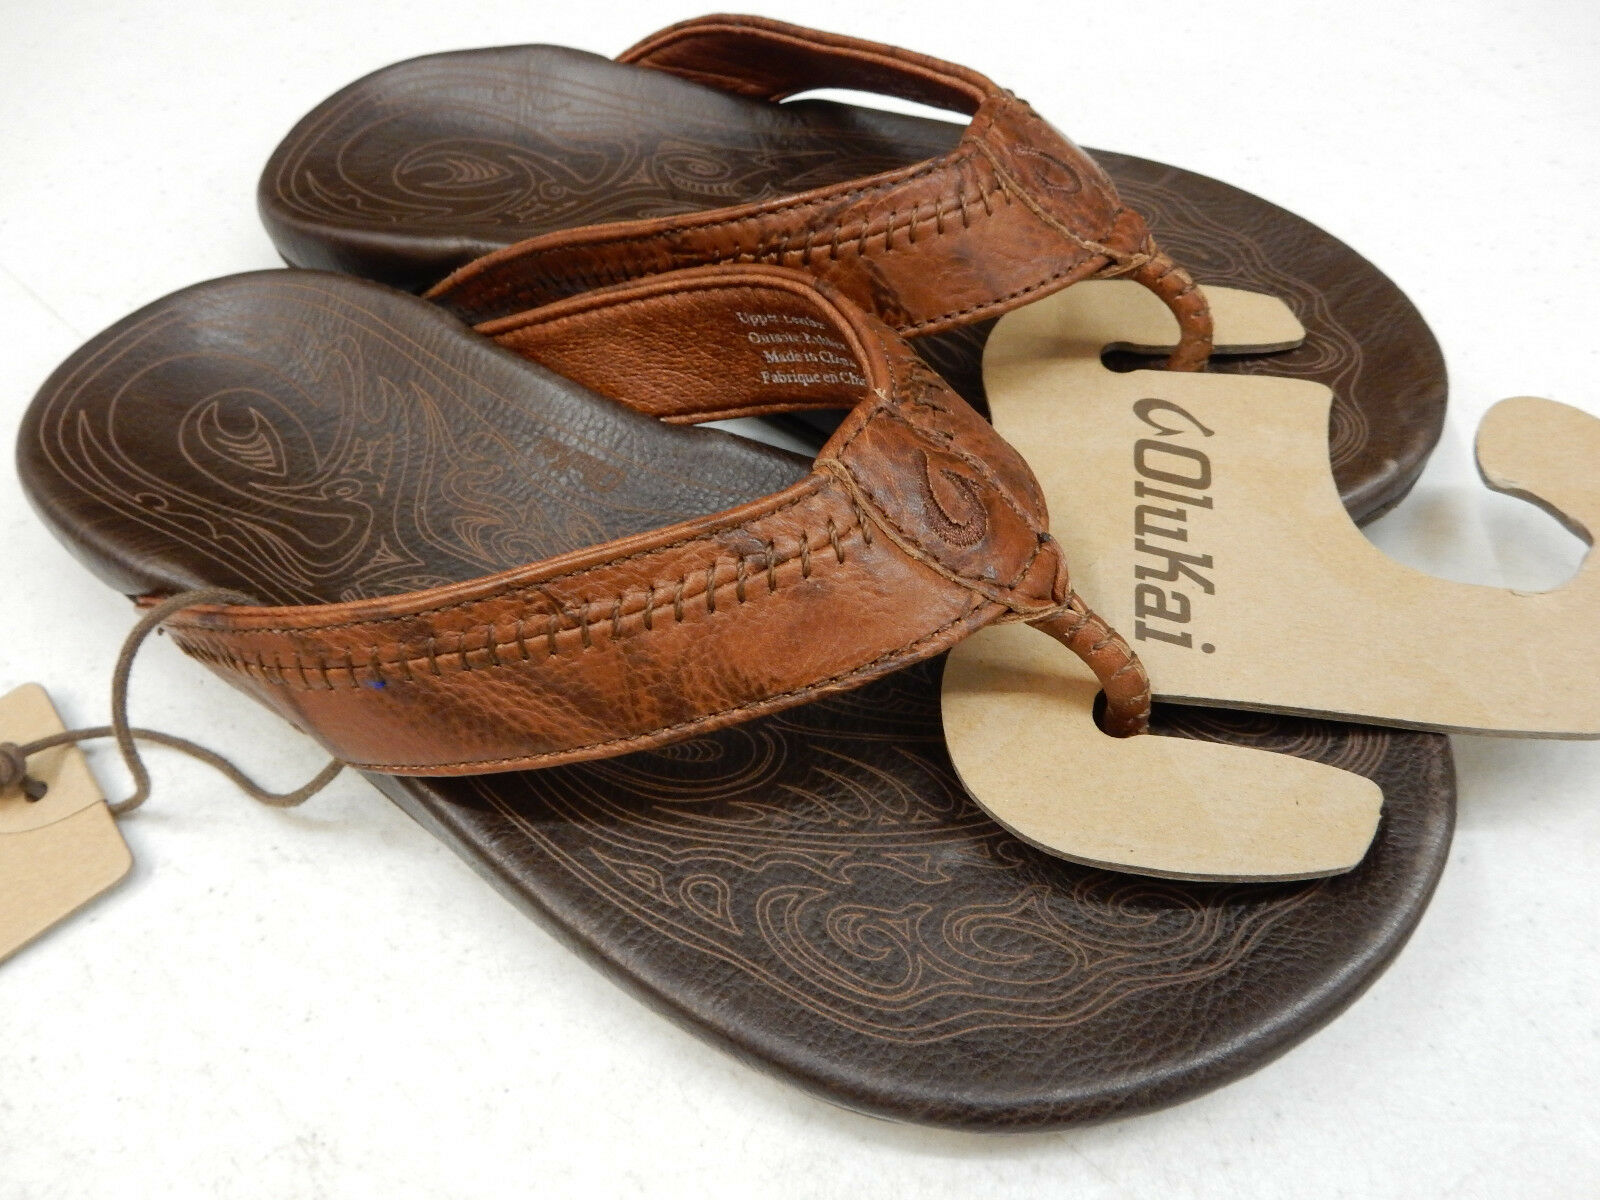 ca5952a36a9e OluKai Men s Hiapo Flip Flops Size 8 Rum Dark Java Leather 10101 for ...